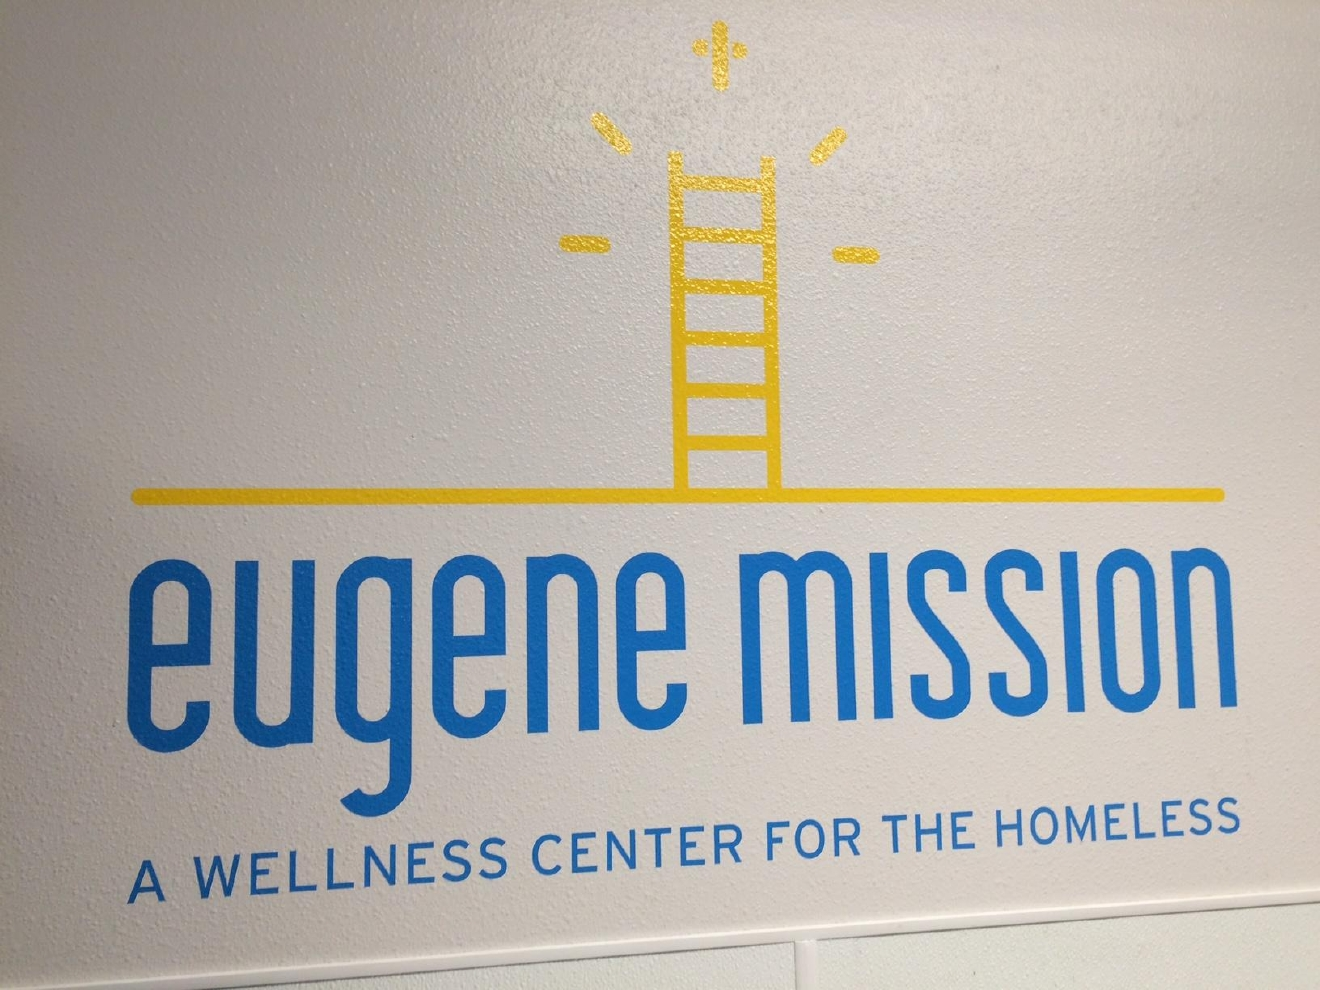 The Eugene Mission revealed its finalized, new kitchen to the public Saturday, Jan. 21, 2017. (SBG photo)